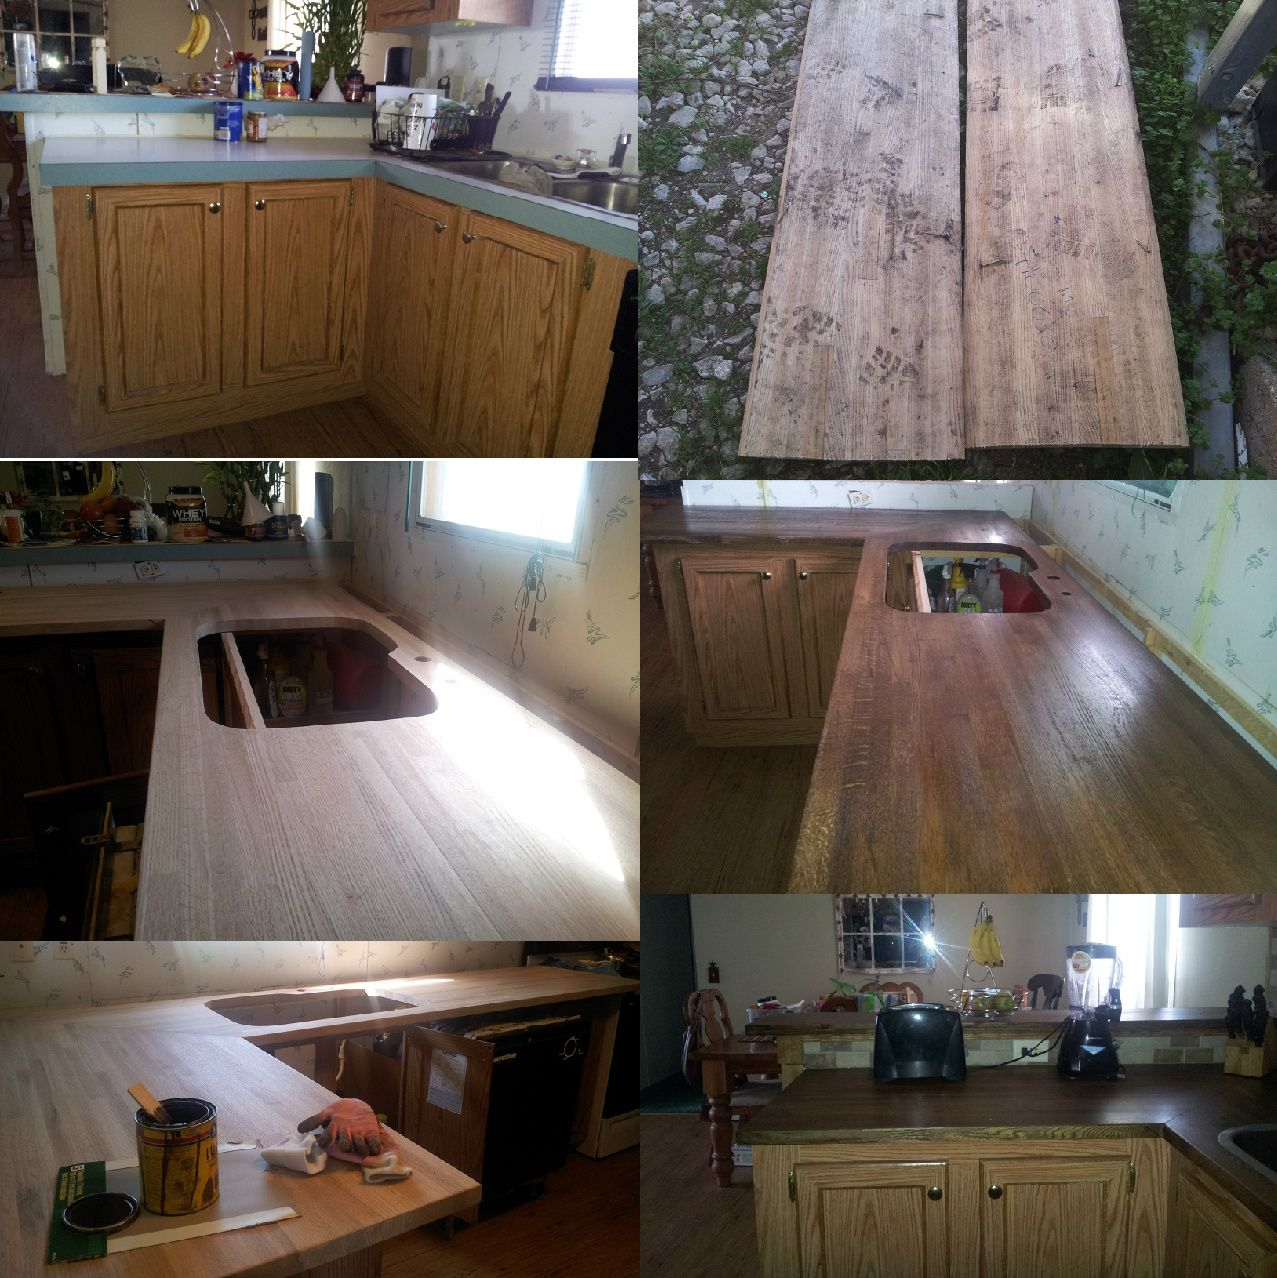 Diy Wood Kitchen Countertops: Diy Rustic Wood Kitchen Countertops.